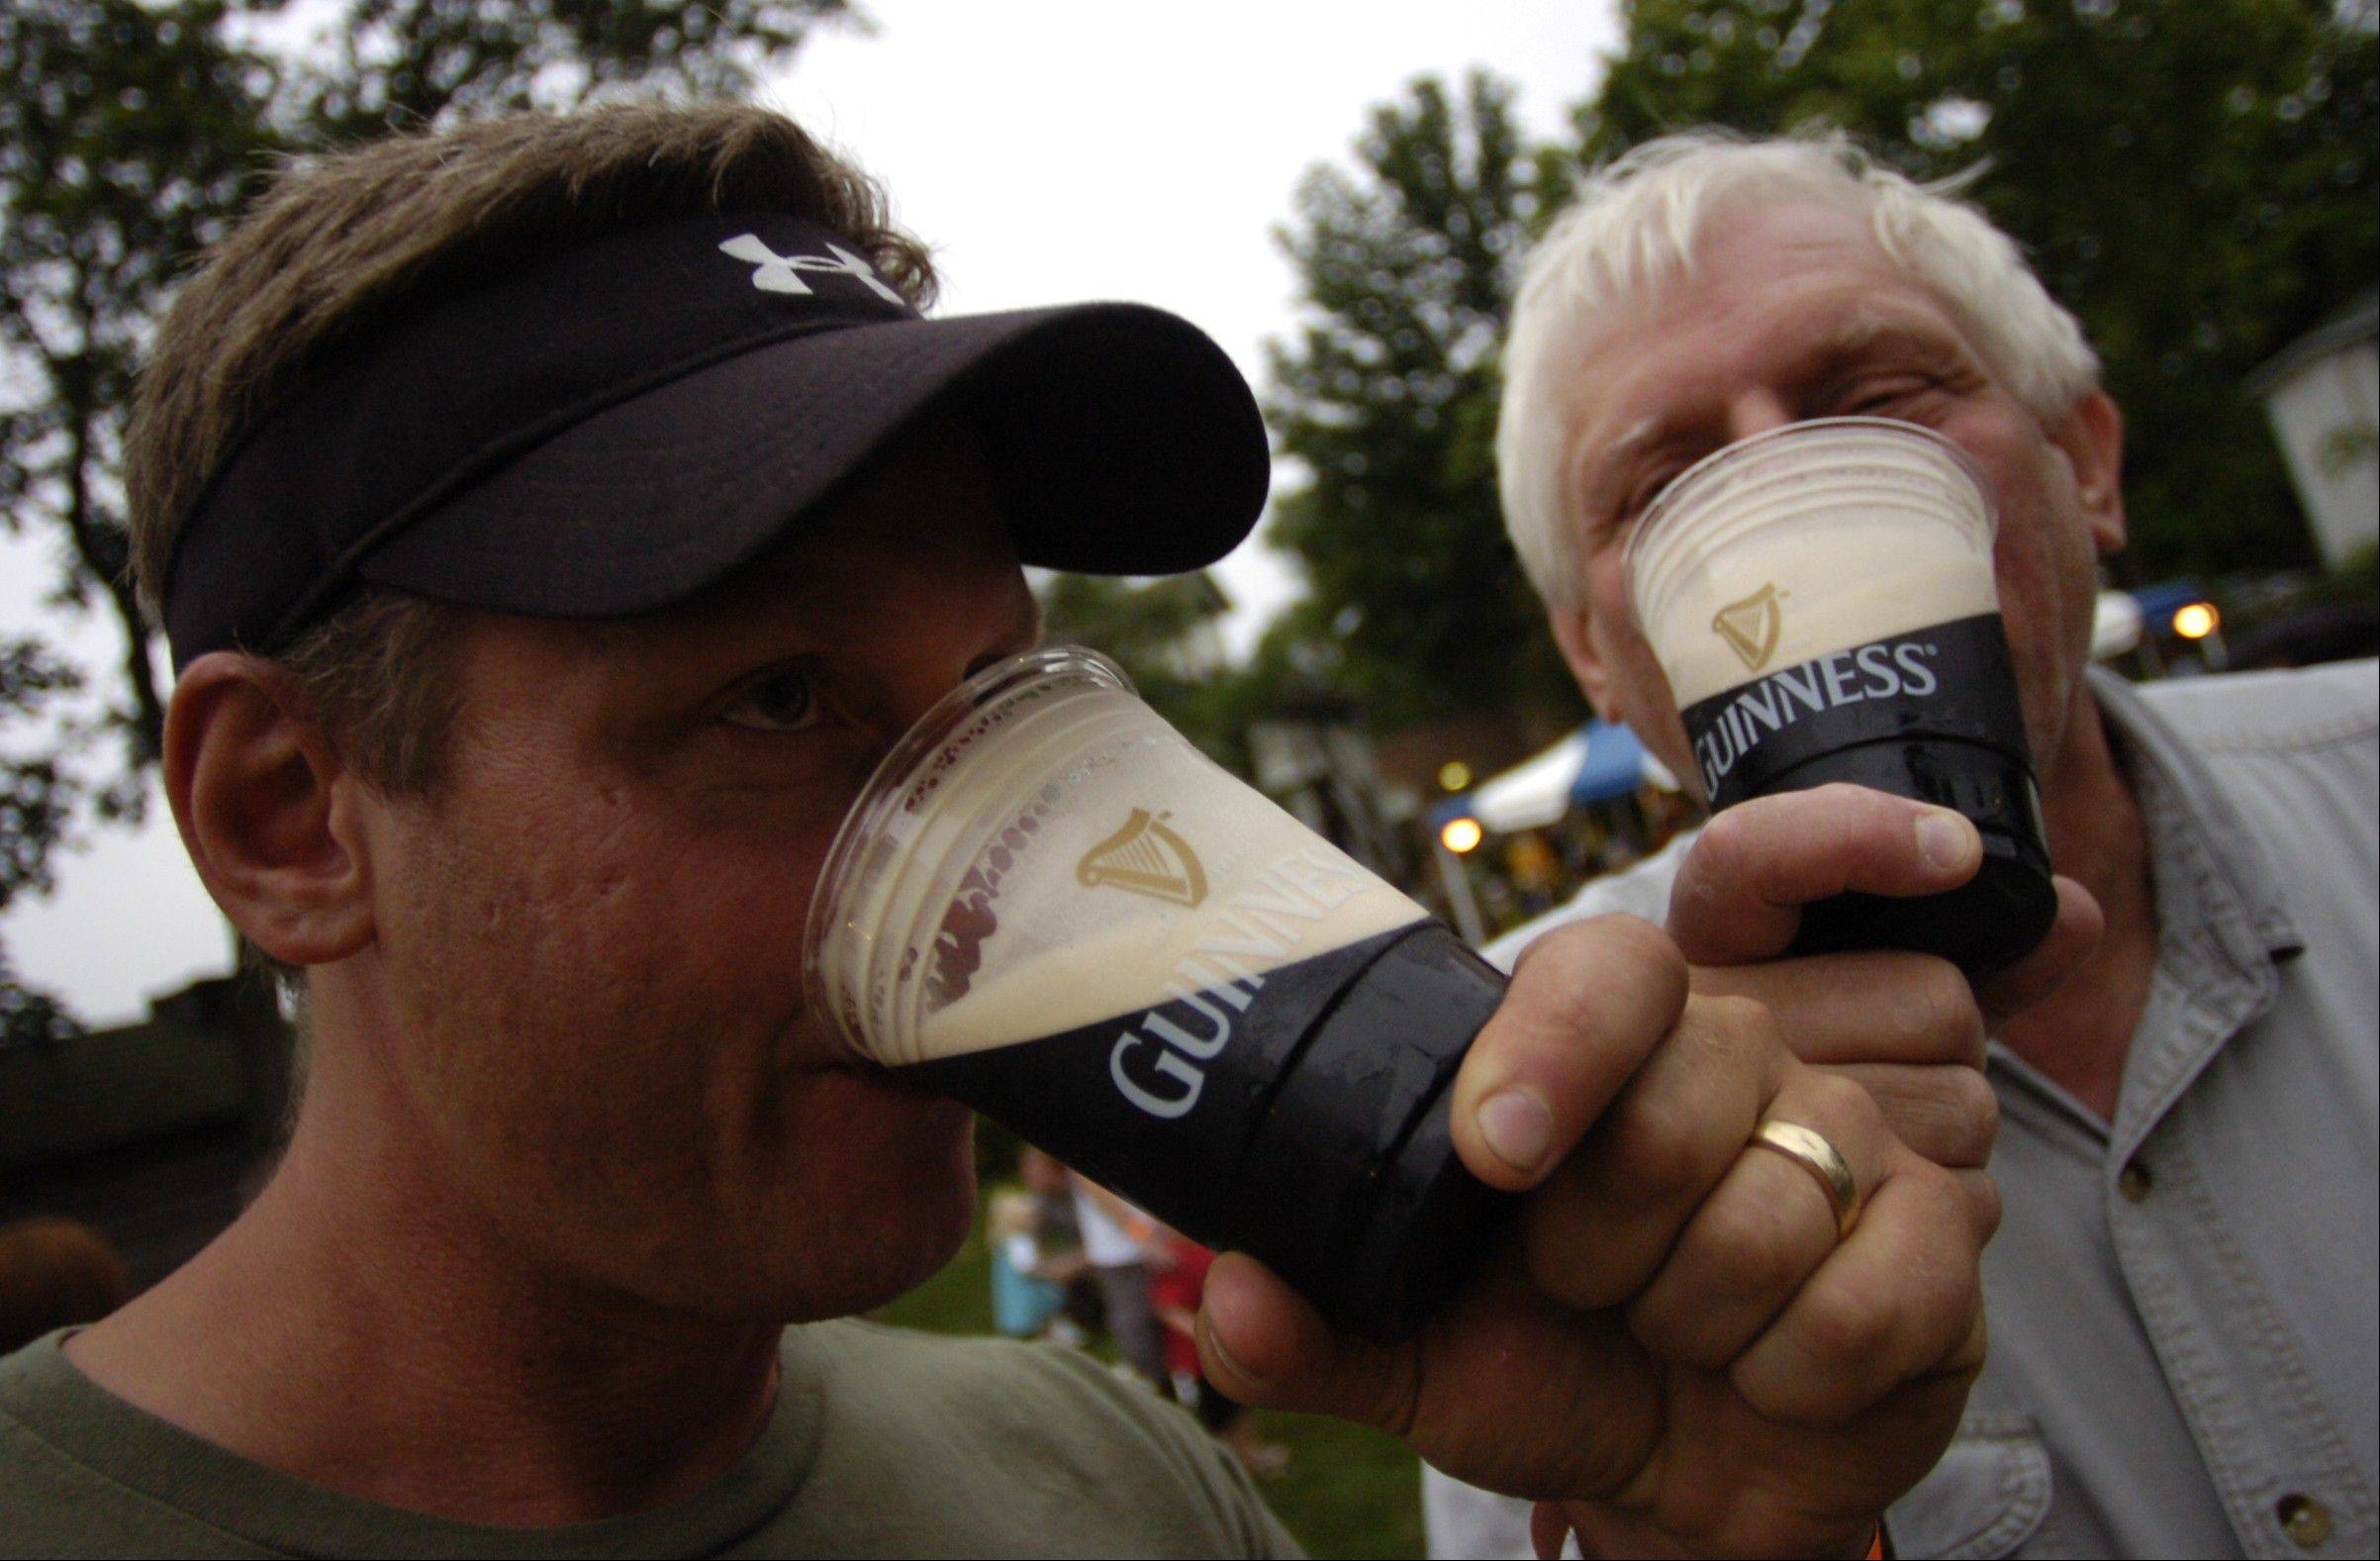 A couple of festival goers partake of the brew.